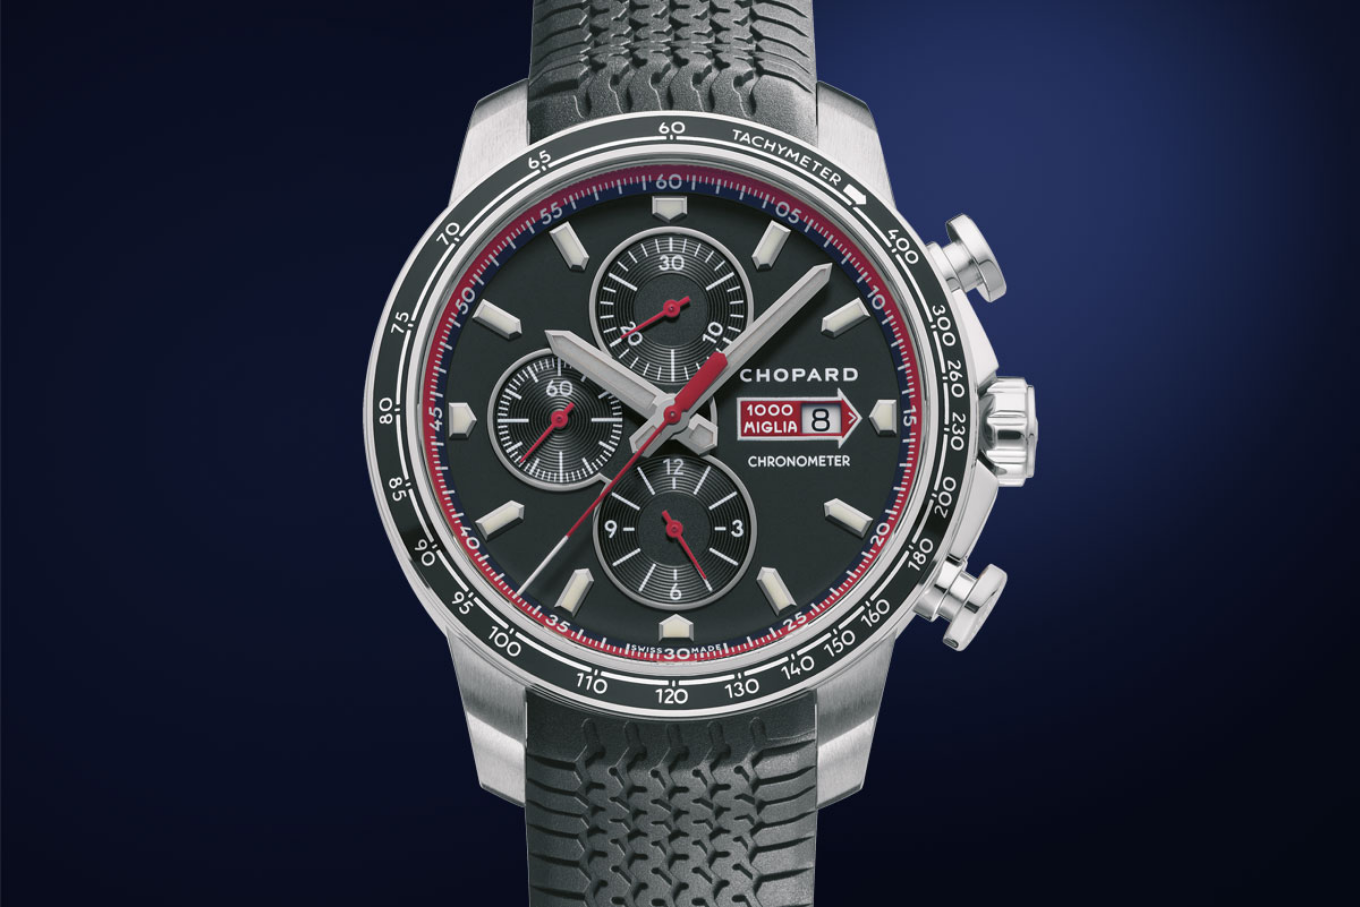 Shop all Chopard watches - Image